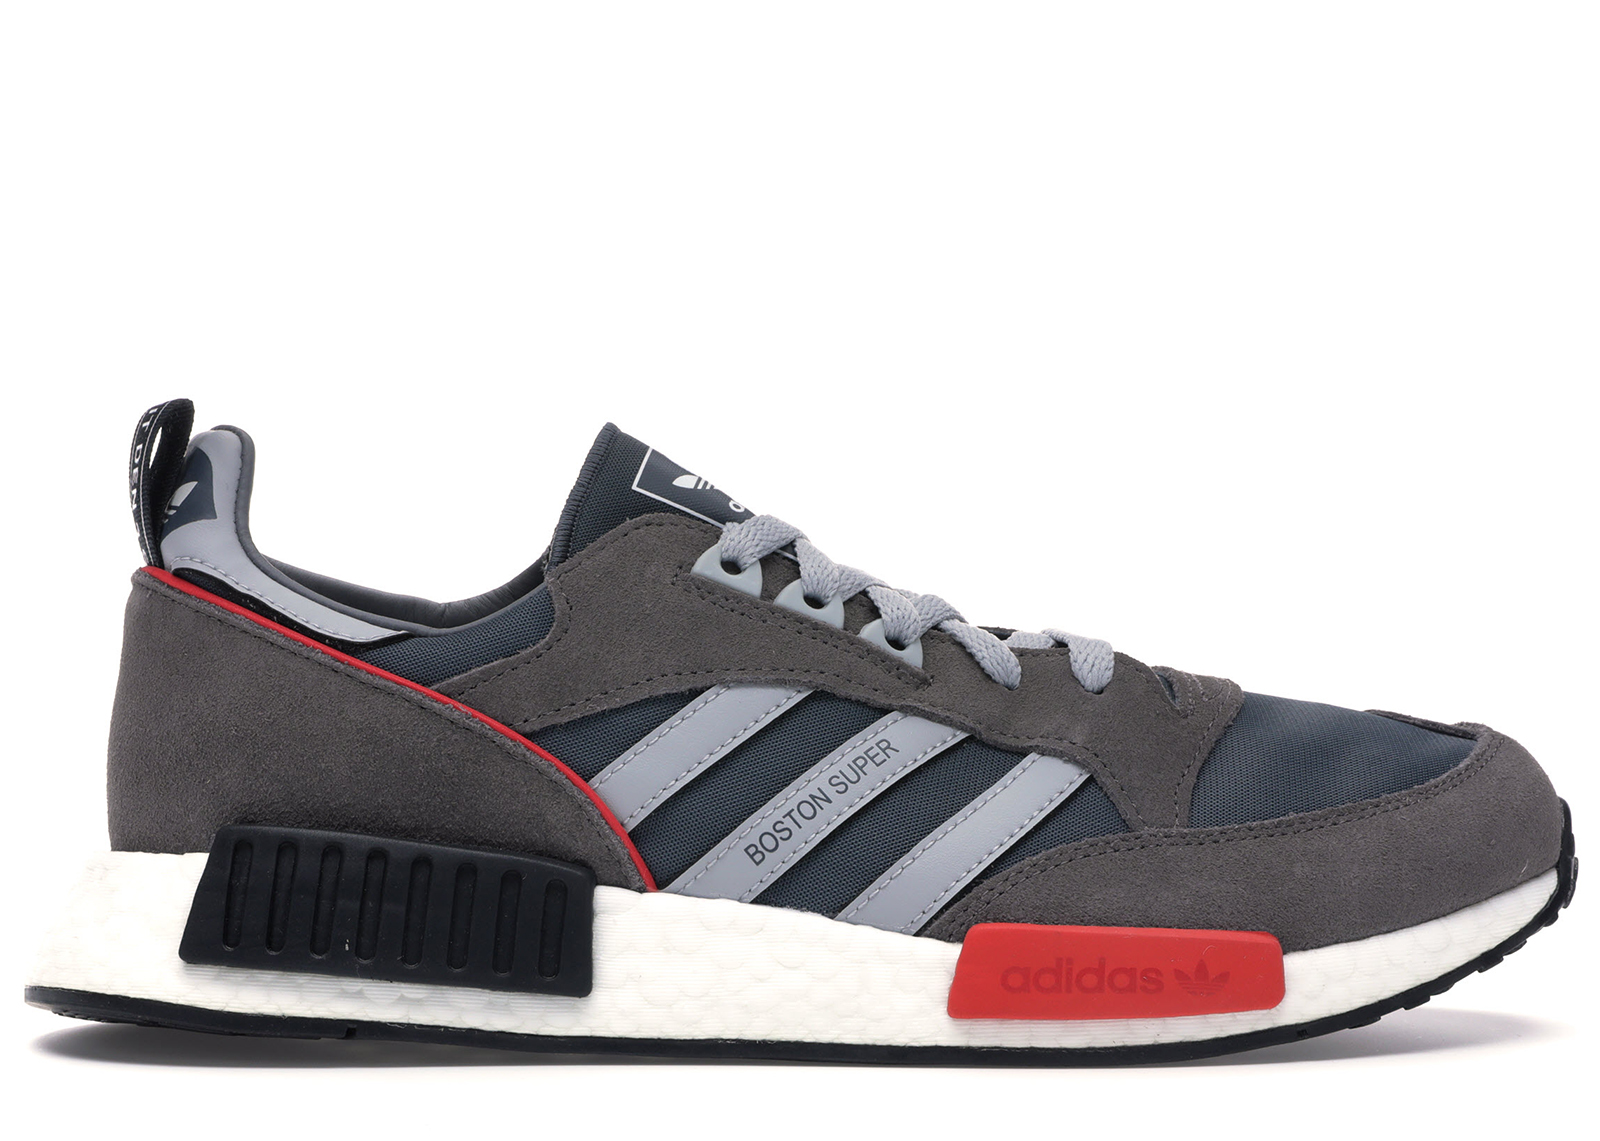 adidas Boston X R1 Never Made Pack - G26776